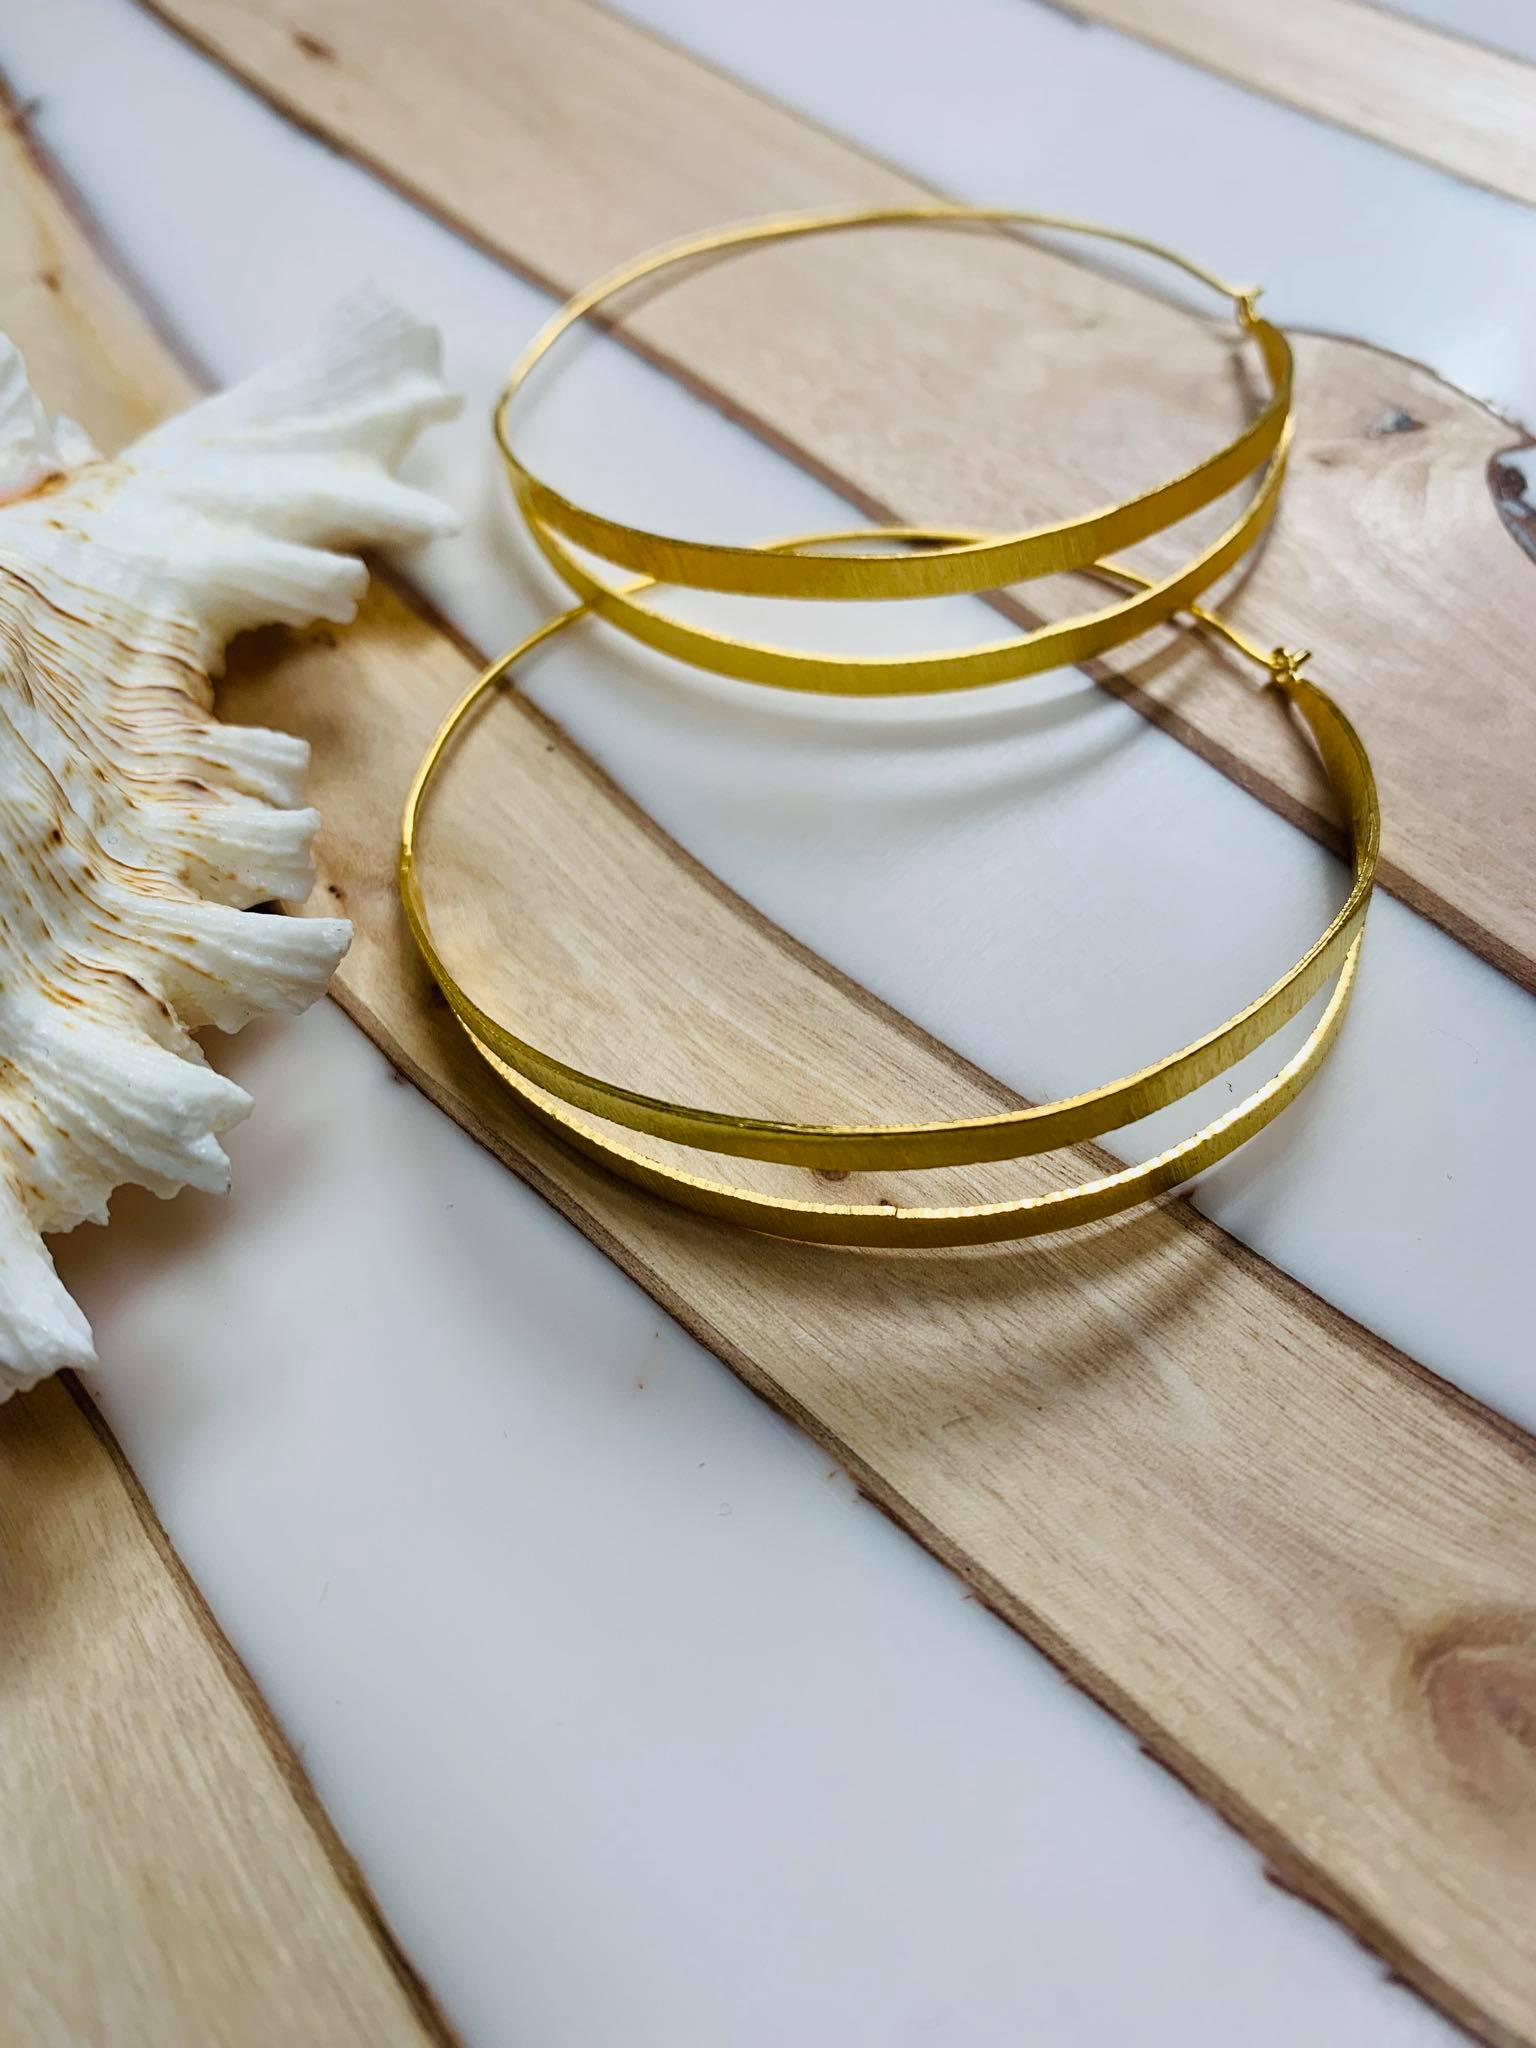 MELANIE WOODS EURO GOLD SPLIT HOOP EARRINGS